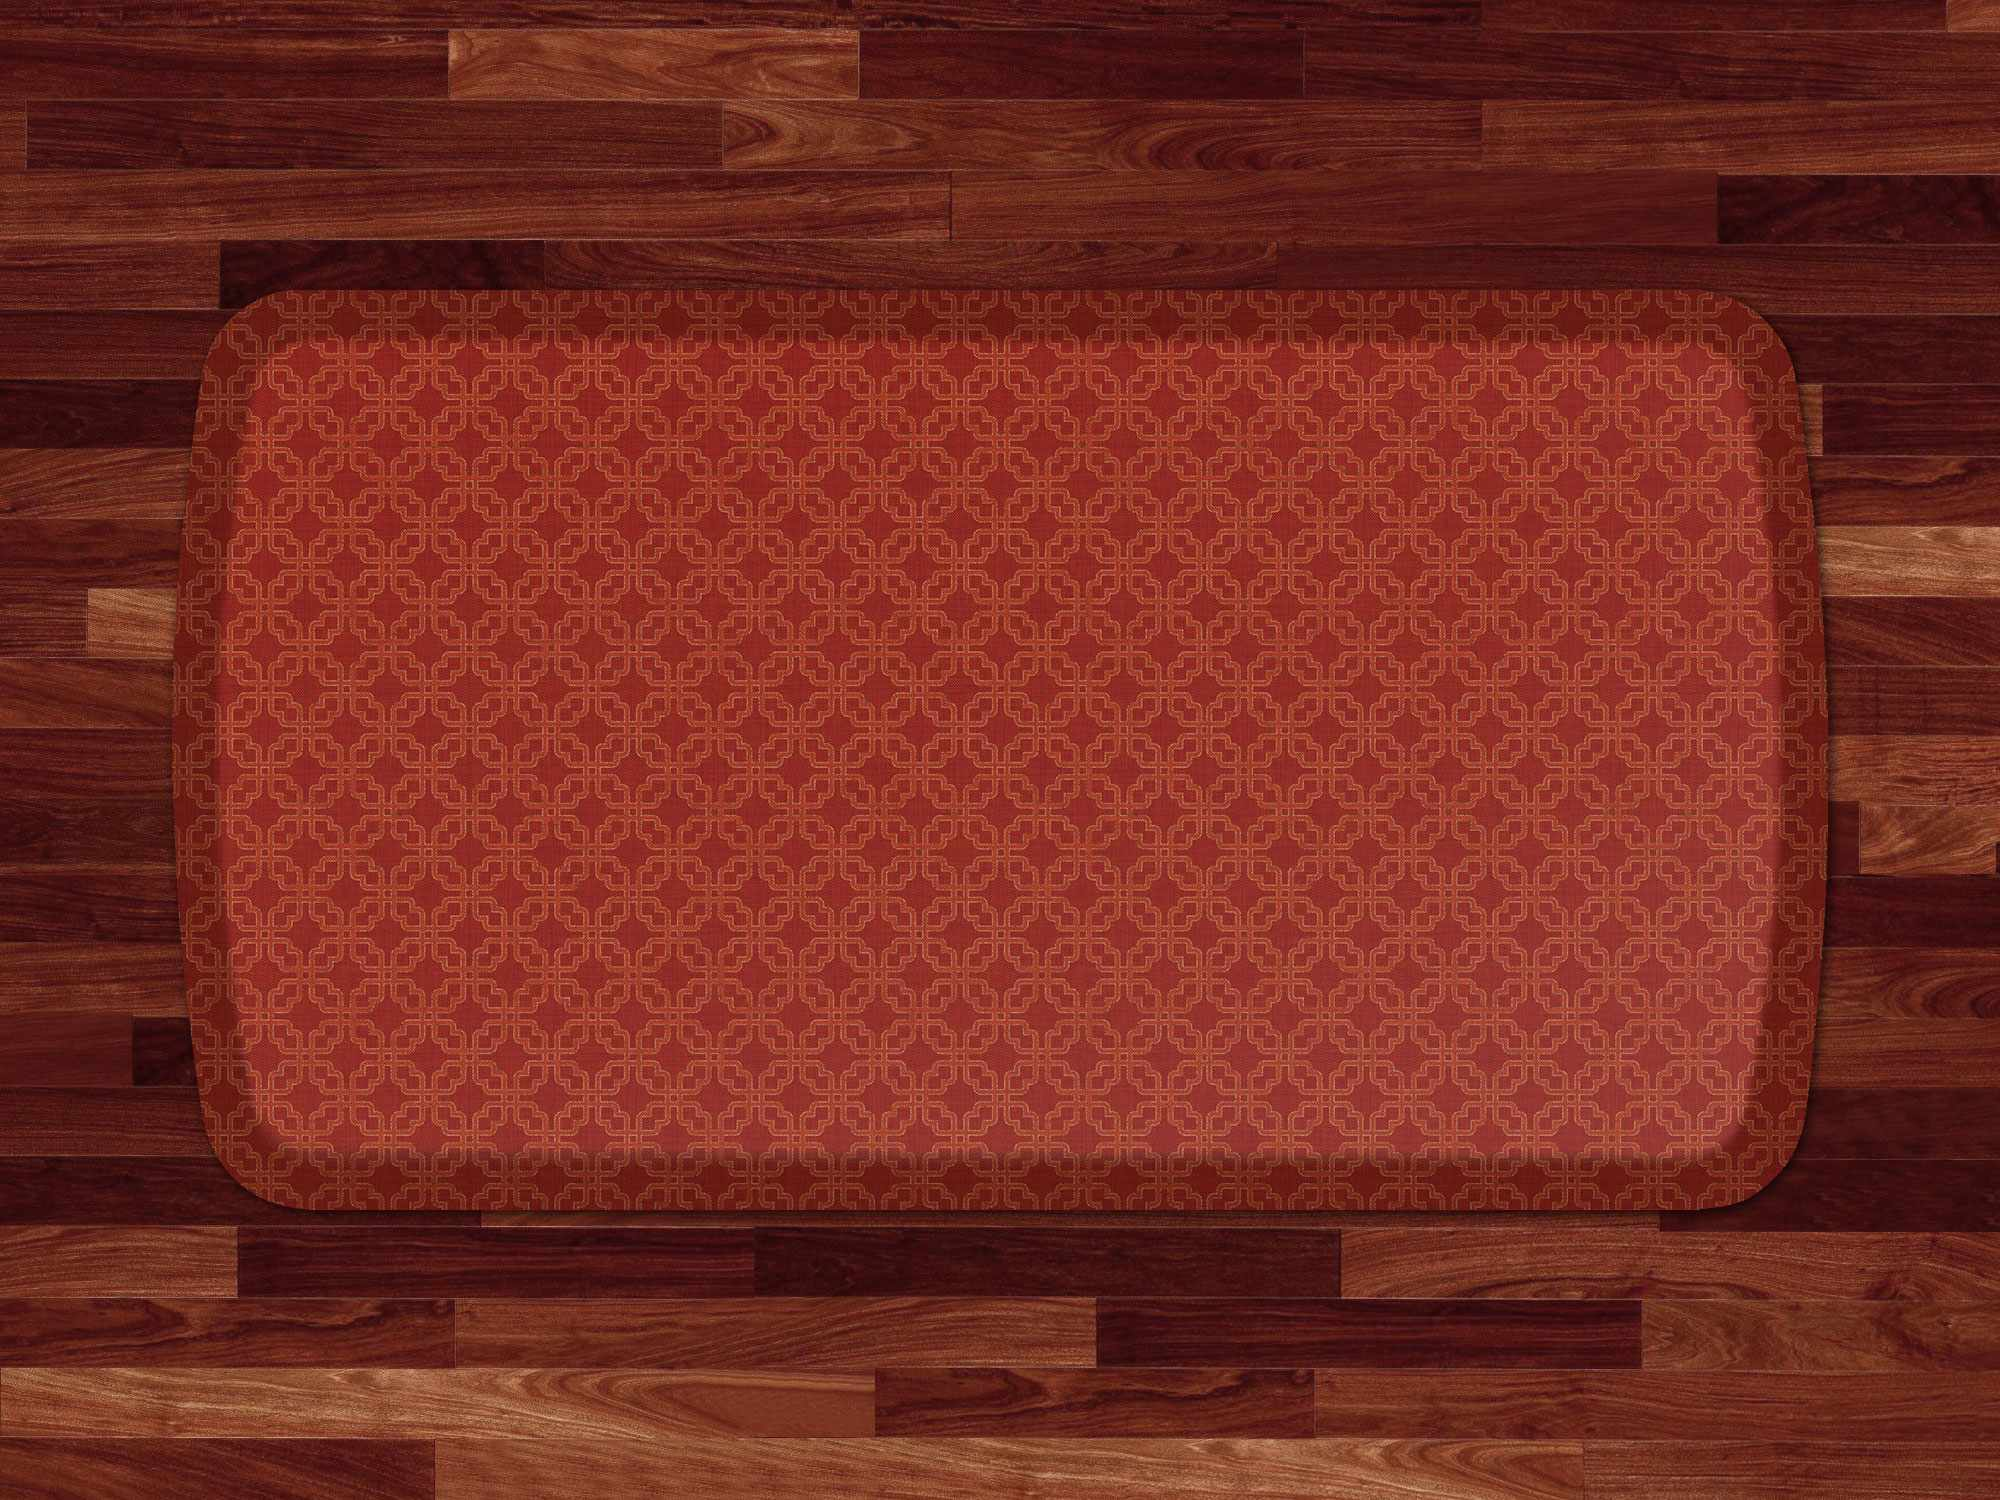 Contemporary Kitchen Floor Mats Square Lattice Anti